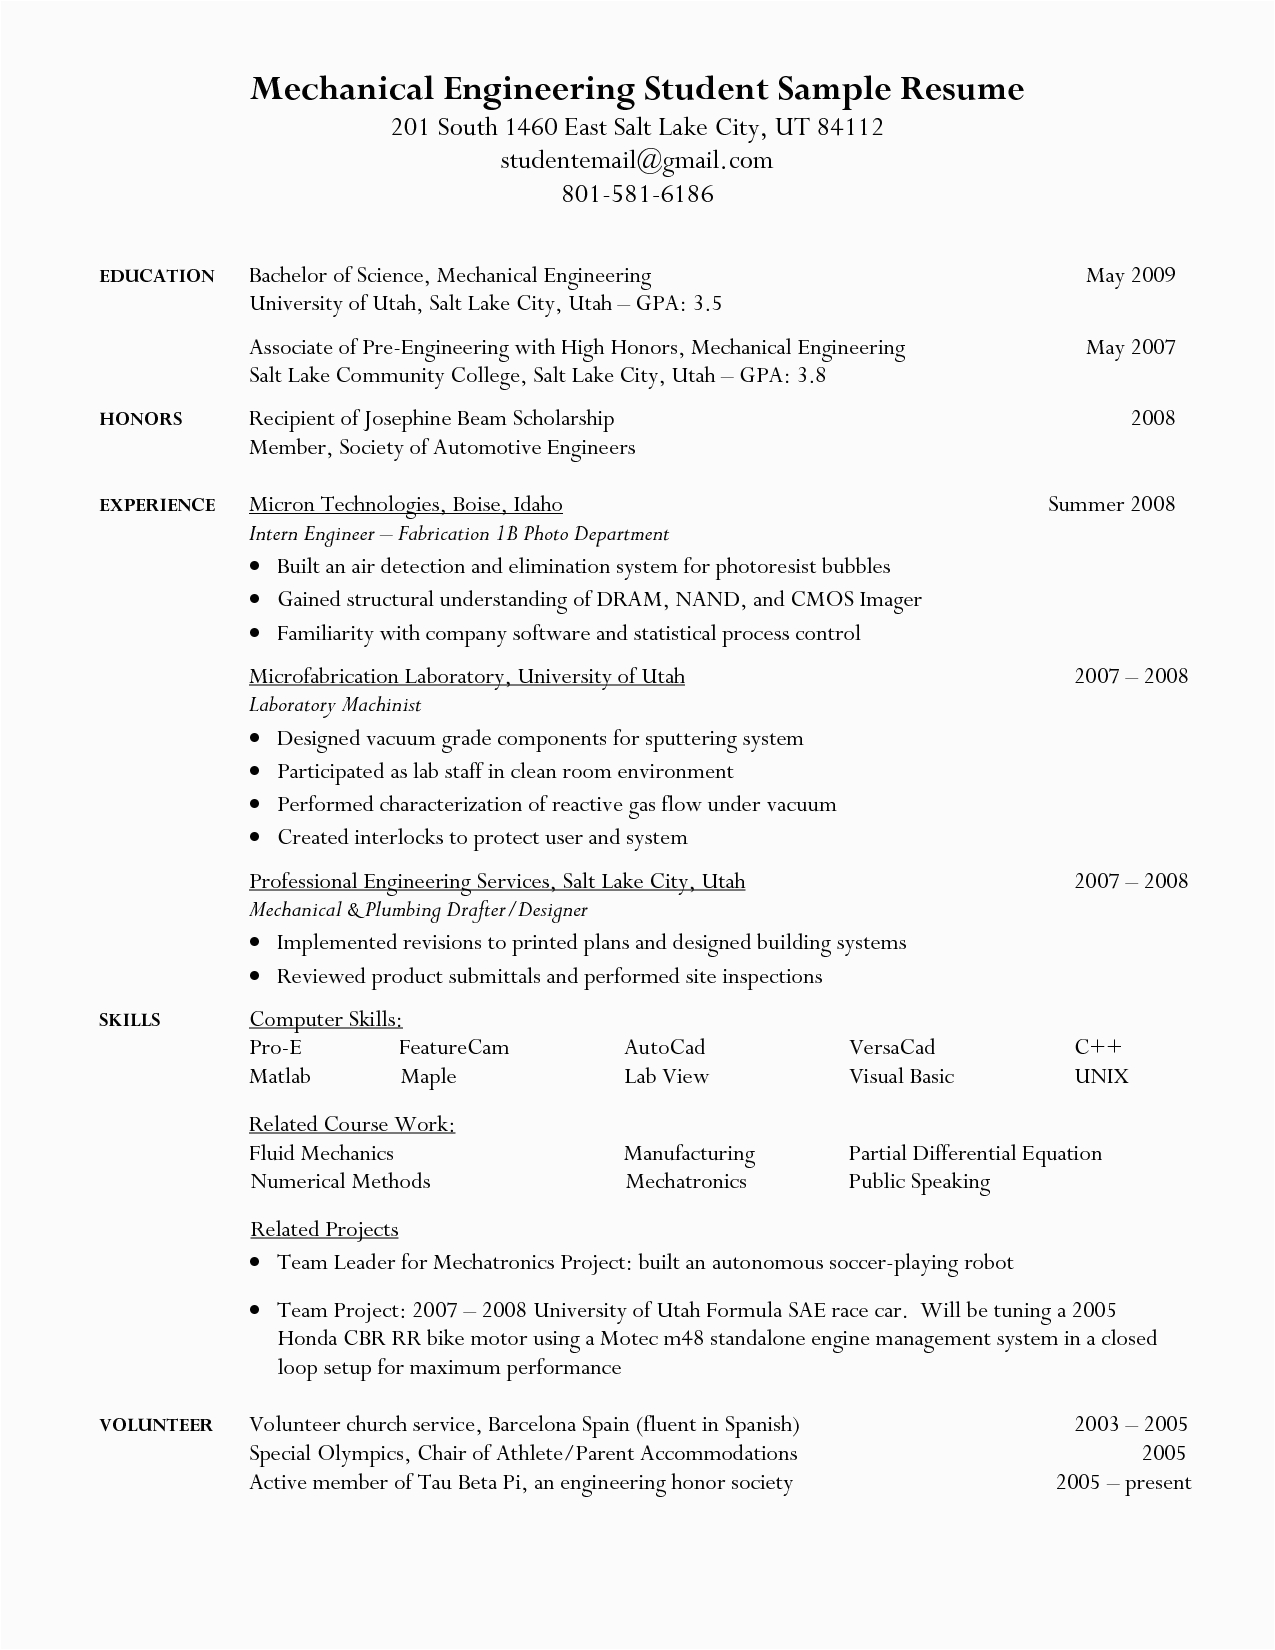 Resume Samples for Engineering Students In College Engineering Student Resume Google Search